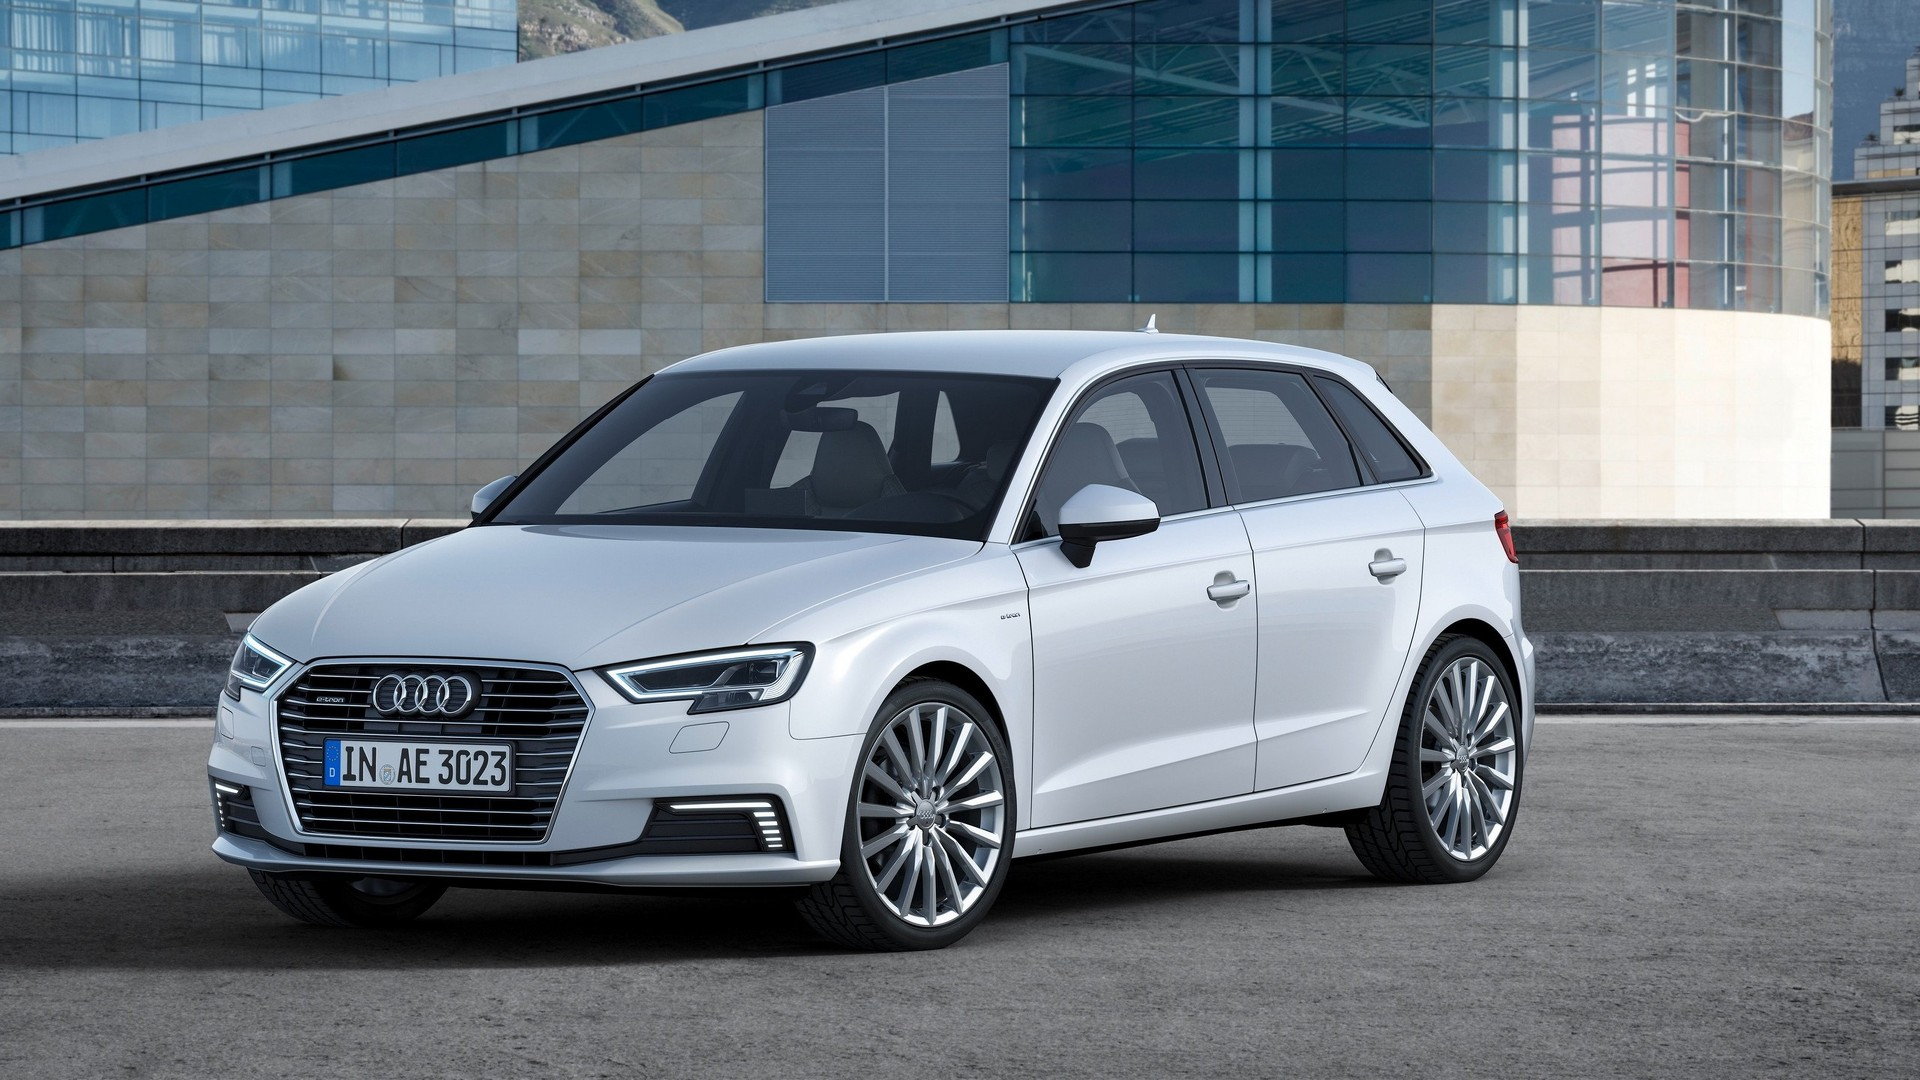 2017 Audi A3 Sportback e-tron gets virtual pit, sport package